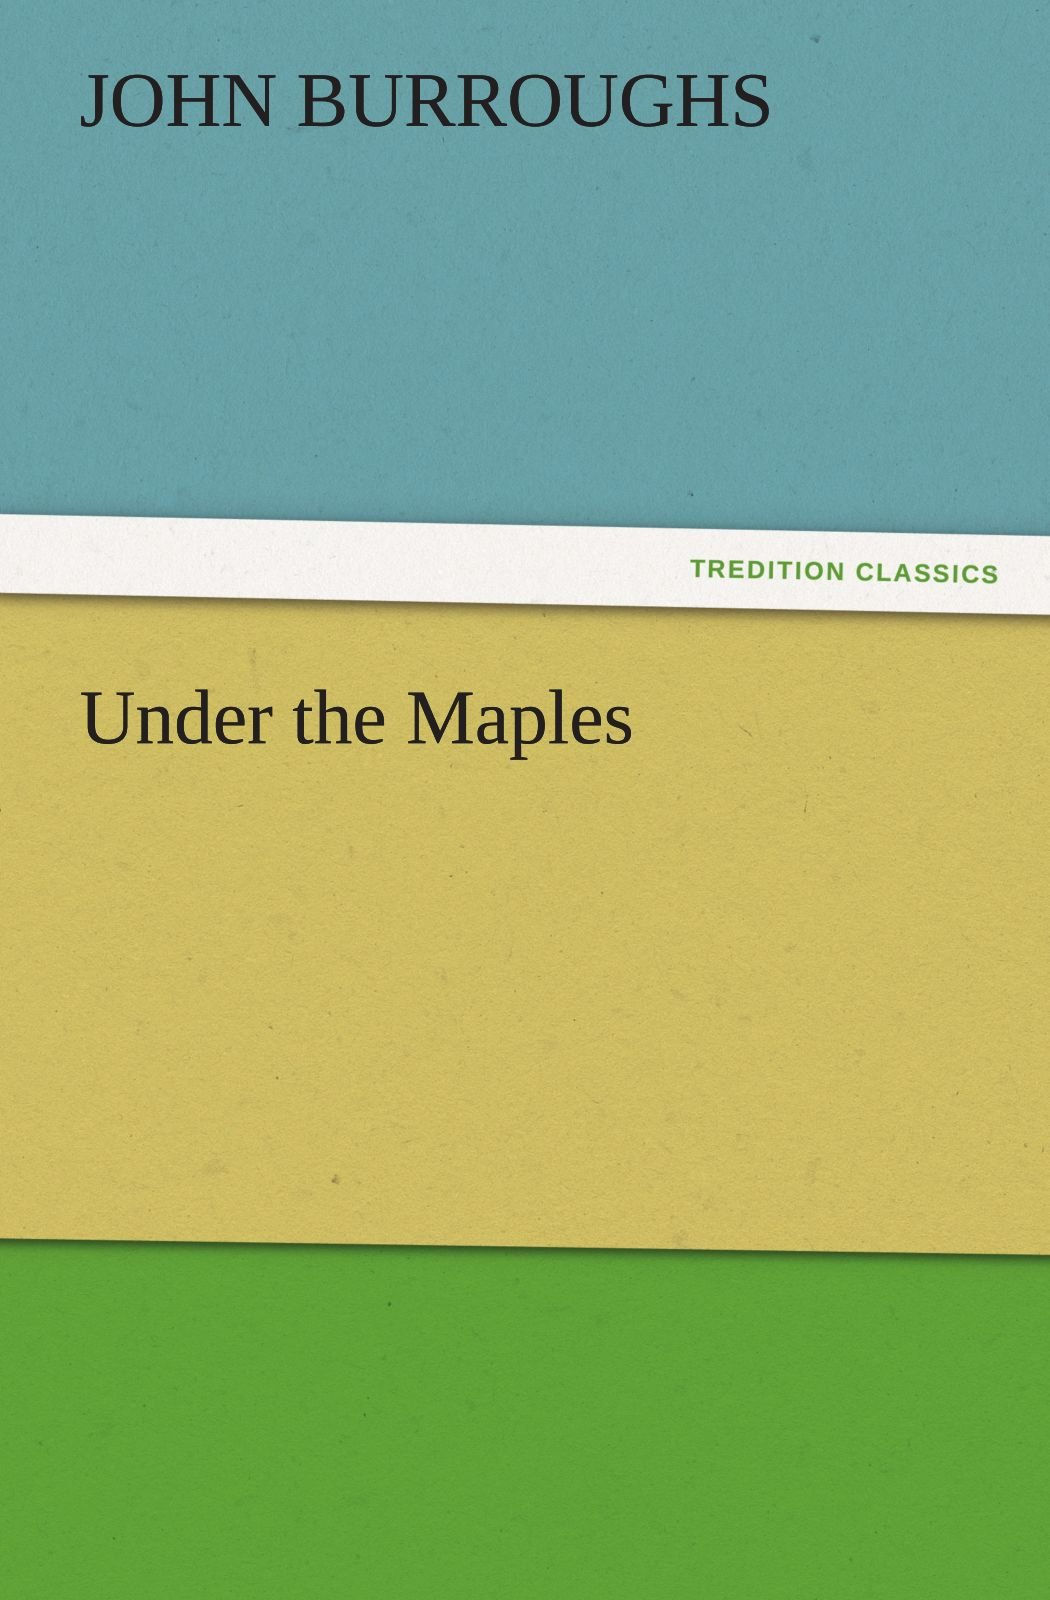 Under the Maples (TREDITION CLASSICS) ebook